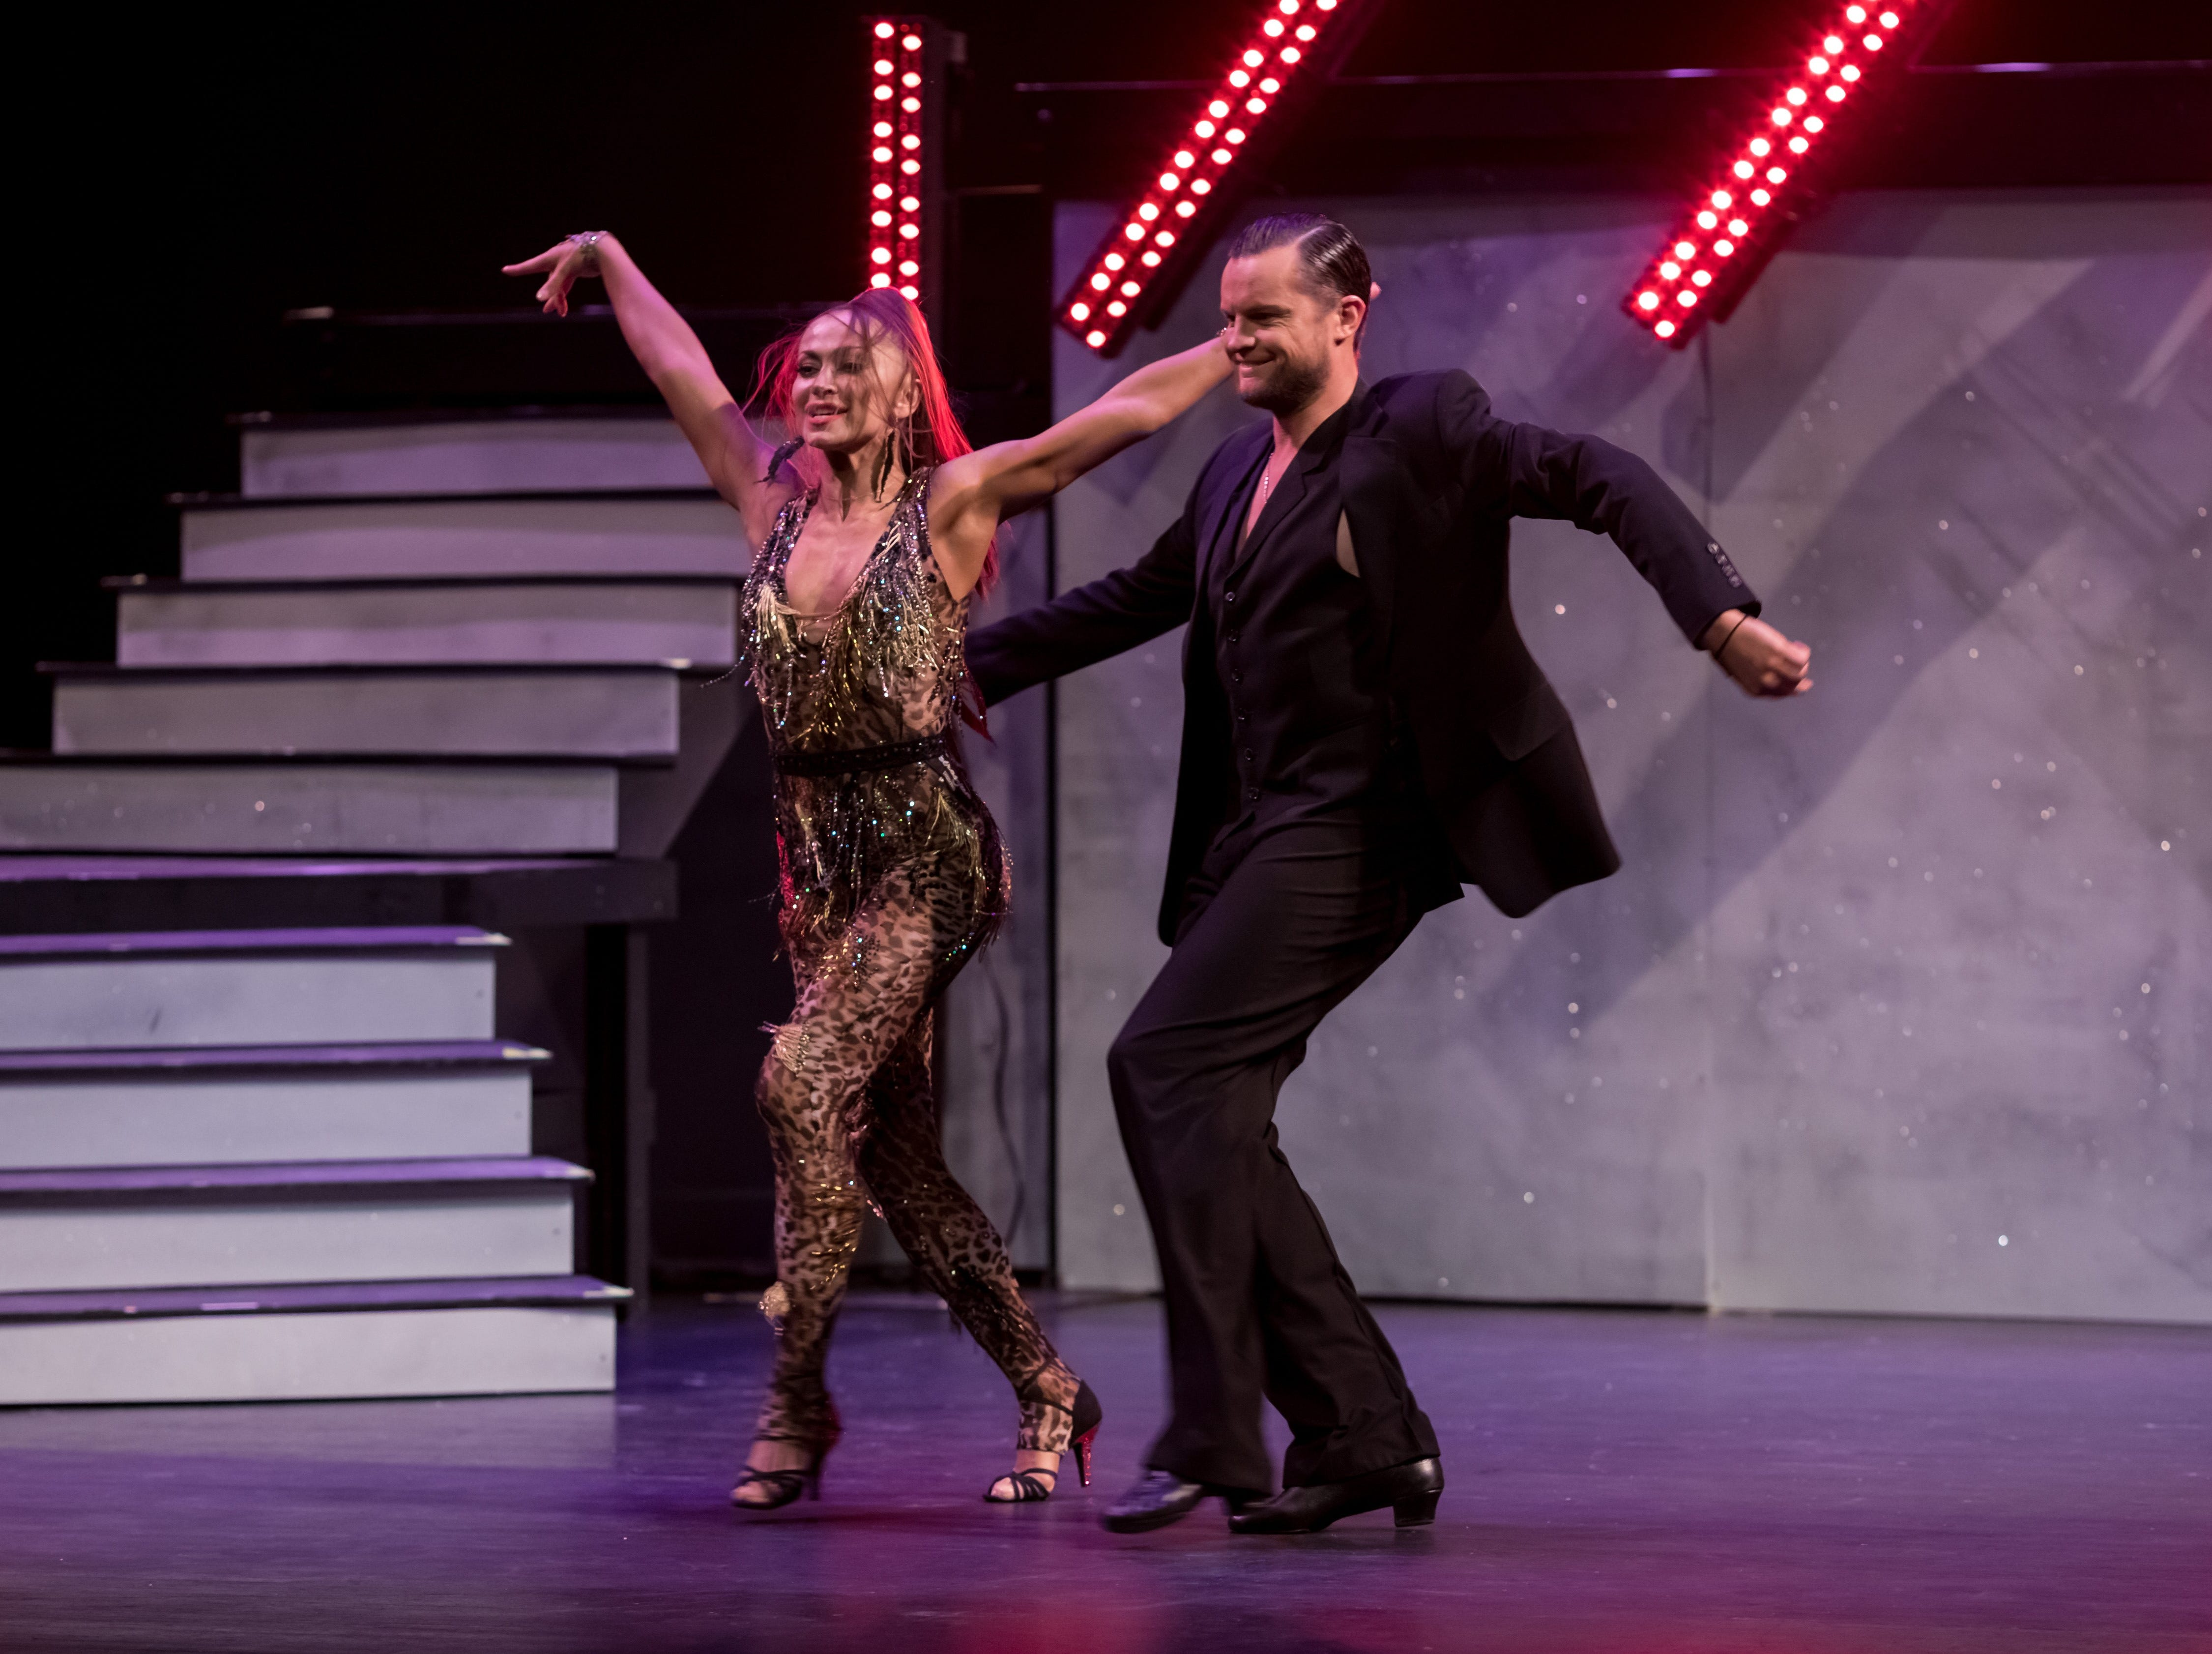 """Karina Smirnoff and her partner Justin Duknauskas perform at the inaugural """"Dancing with the Local Stars"""" Feb. 24, 2019, in Asheville."""